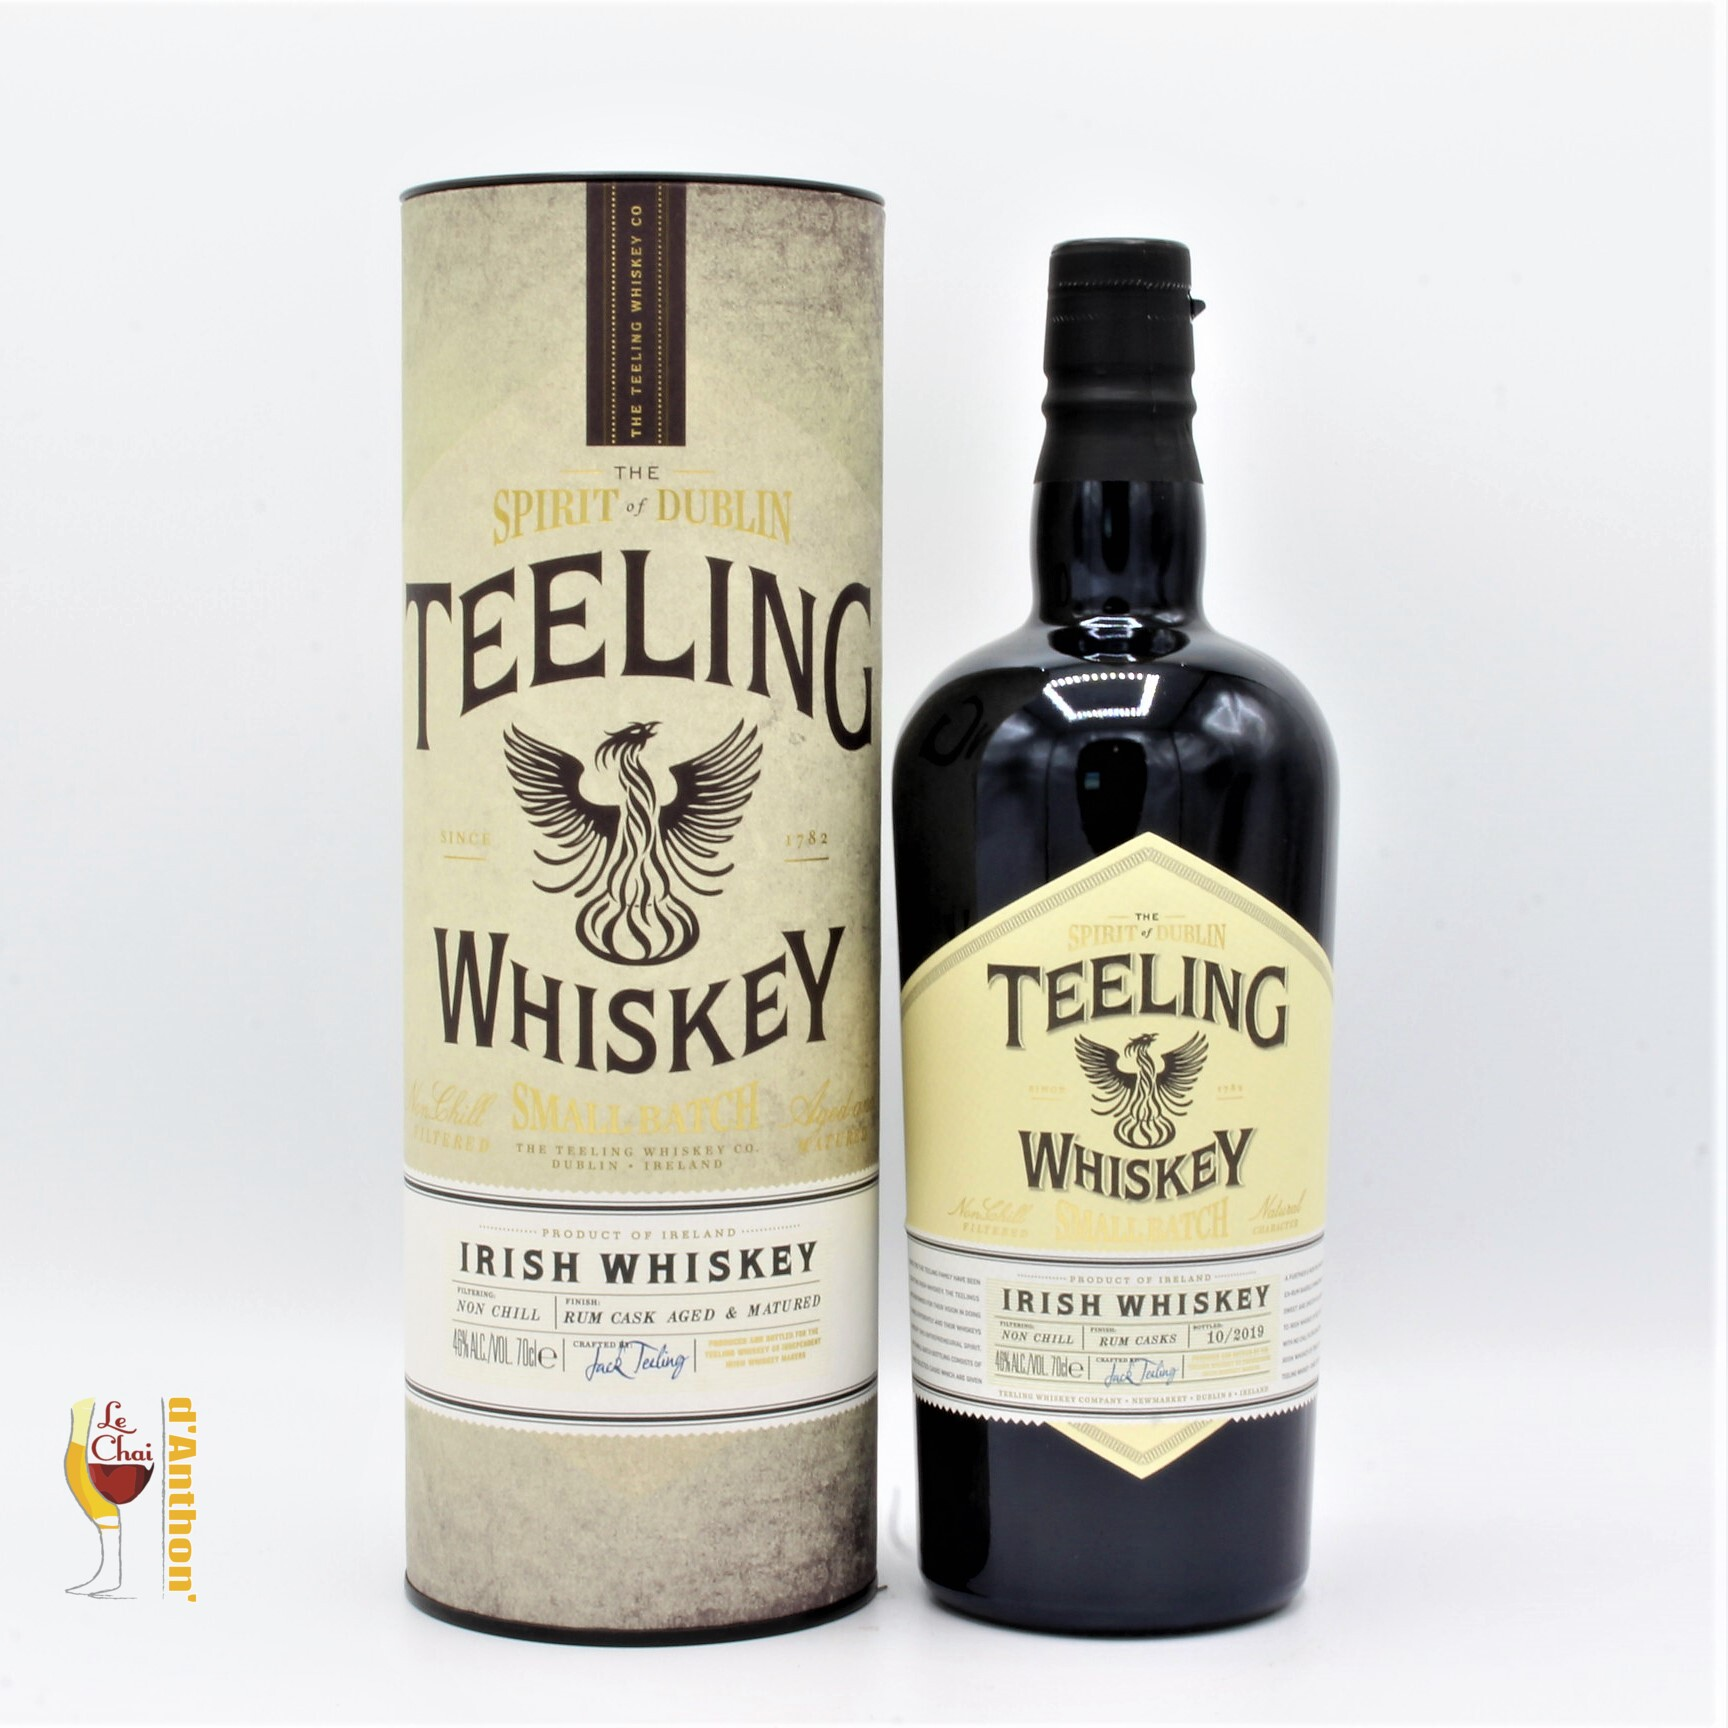 Le Chai D&924.JPG039;Anthon Spiritueux Whiskies Irish Blend Teeling Small Batch 70cl 924